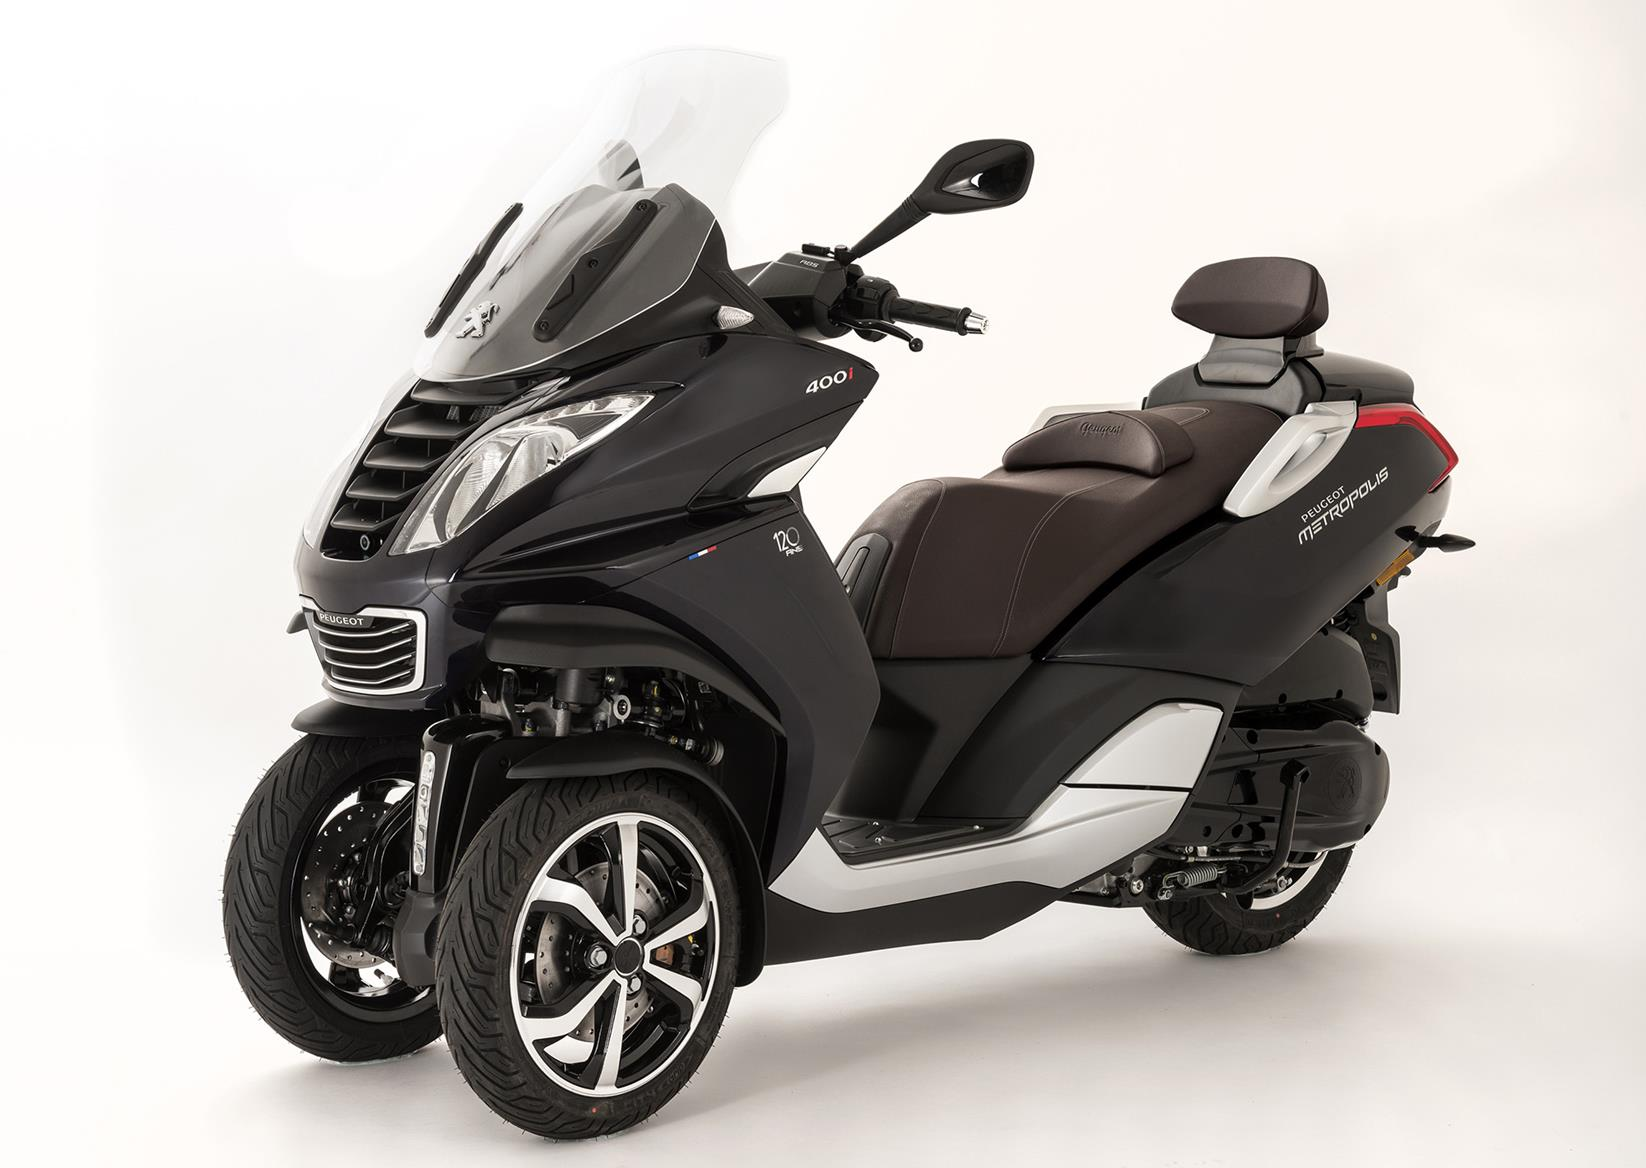 peugeot announce scooter with dash cams as standard. Black Bedroom Furniture Sets. Home Design Ideas